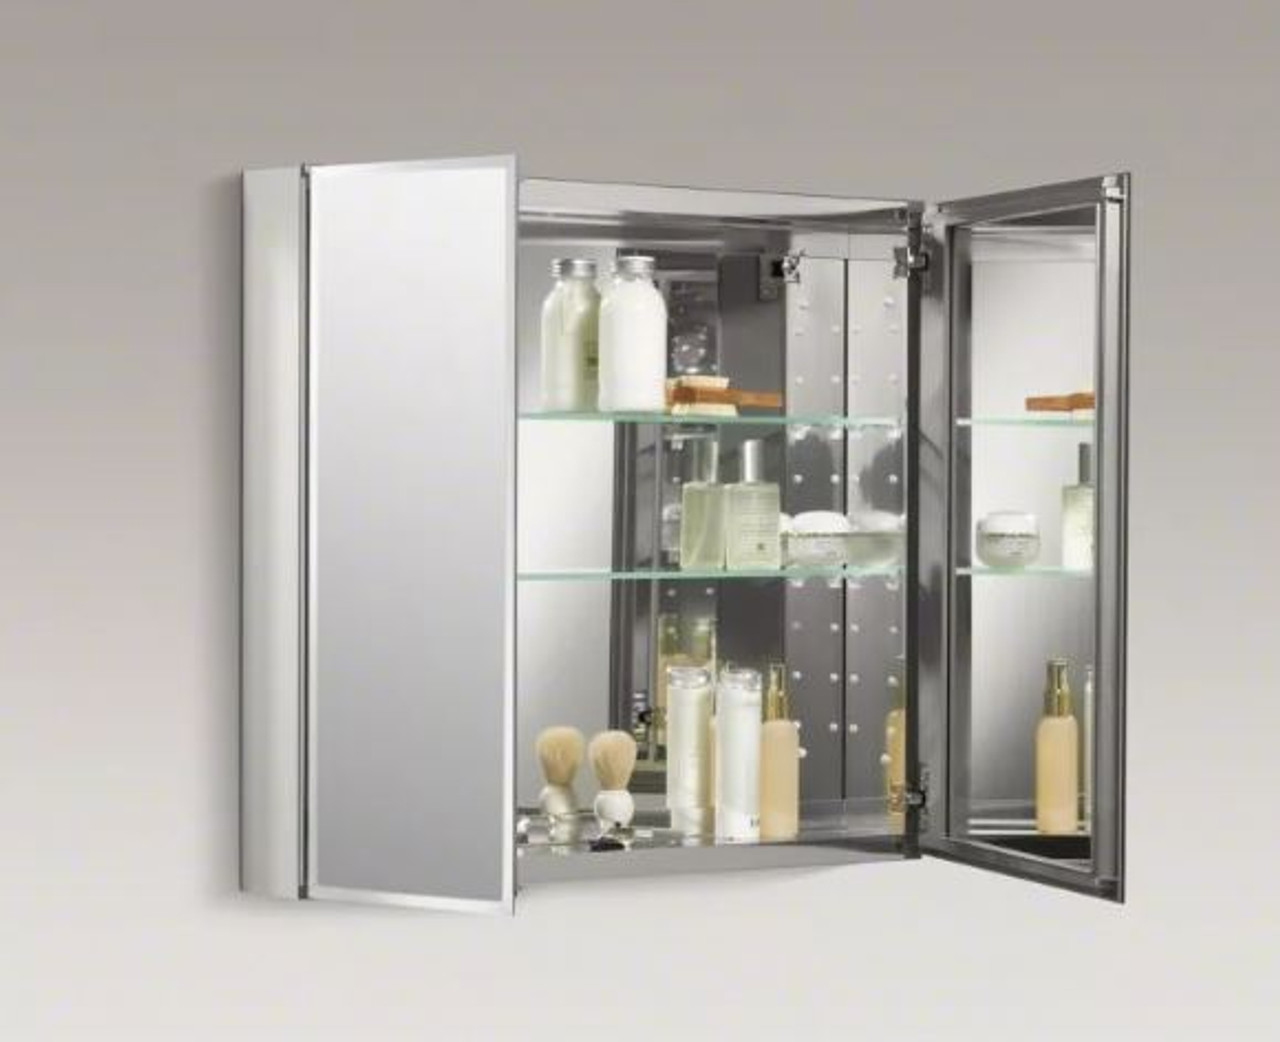 Picture of: Kohler 30 X 26 Double Door Reversible Hinge Frameless Mirrored Medicine Cabinet Royal Bath Place